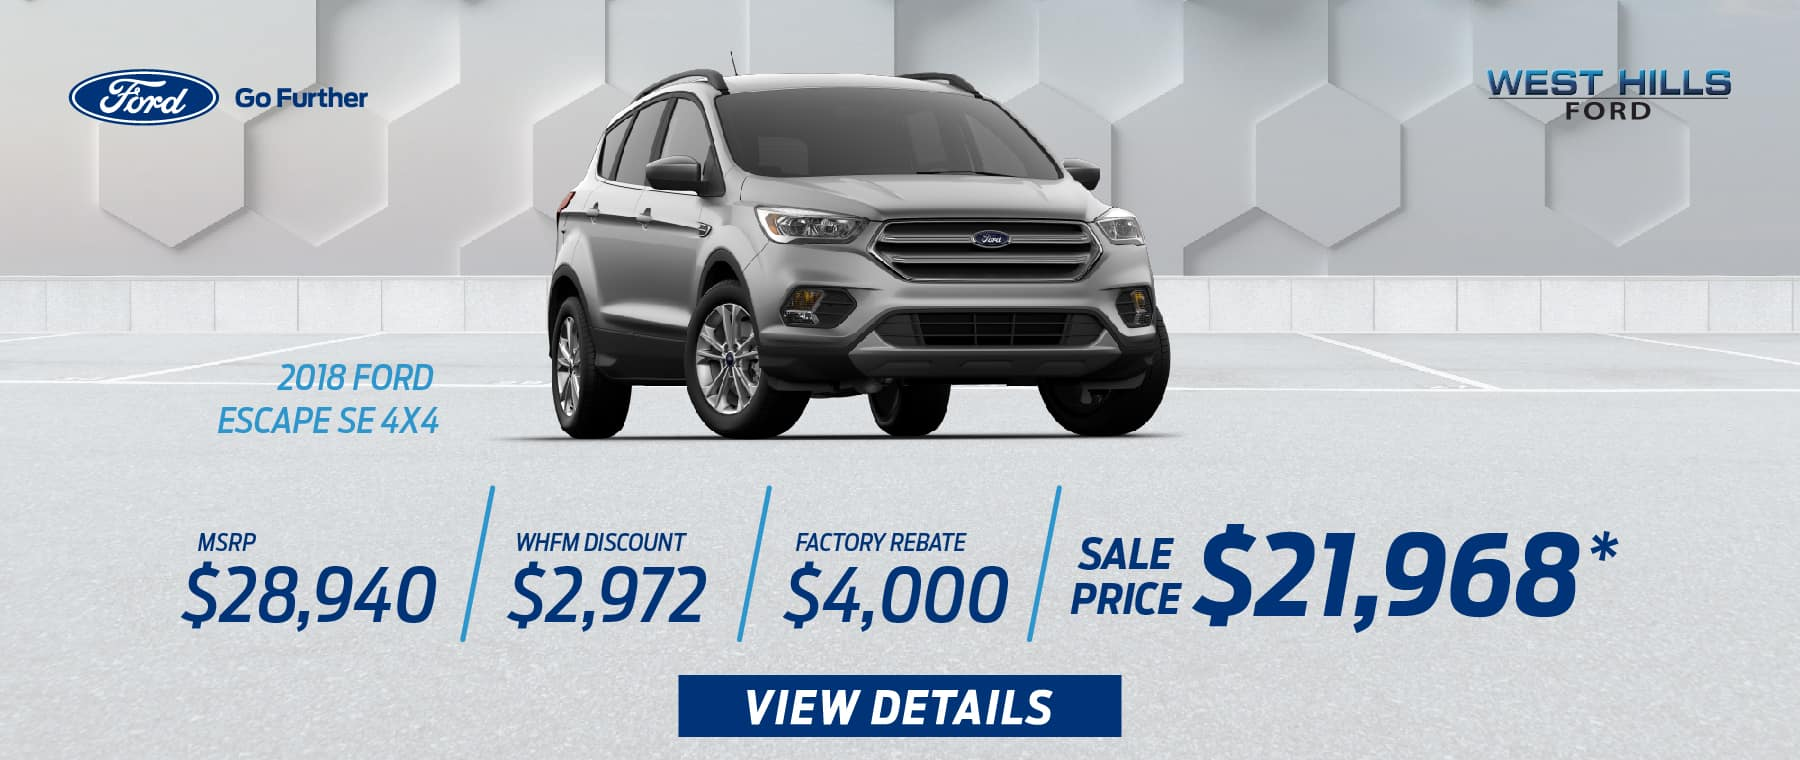 2018 Ford Escape SE 4X4 MSRP: $28,940 WHFM Discount: $2,972 Factory Rebate: $4,000 Sale Price: $21,968   *Offer valid on 2018 Ford Escape SE 4X4. VIN: 1FMCU9GD0JUD60499. Subject to credit approval. WHFM Discount: $2,972. Factory Rebate: $4,000, Sale Price: $21,968, not all will qualify. Based on approval of program ID 13374, 13388, 36914. Down payment and monthly payment may vary. Excludes state and local taxes, tags, registration, title, insurance and dealer charges. See dealer or go to ford.com for qualifications and complete details. A negotiable dealer documentary service fee of up to $150 may be added to the sale price or capitalized cost. Offer expires 1/31/19.